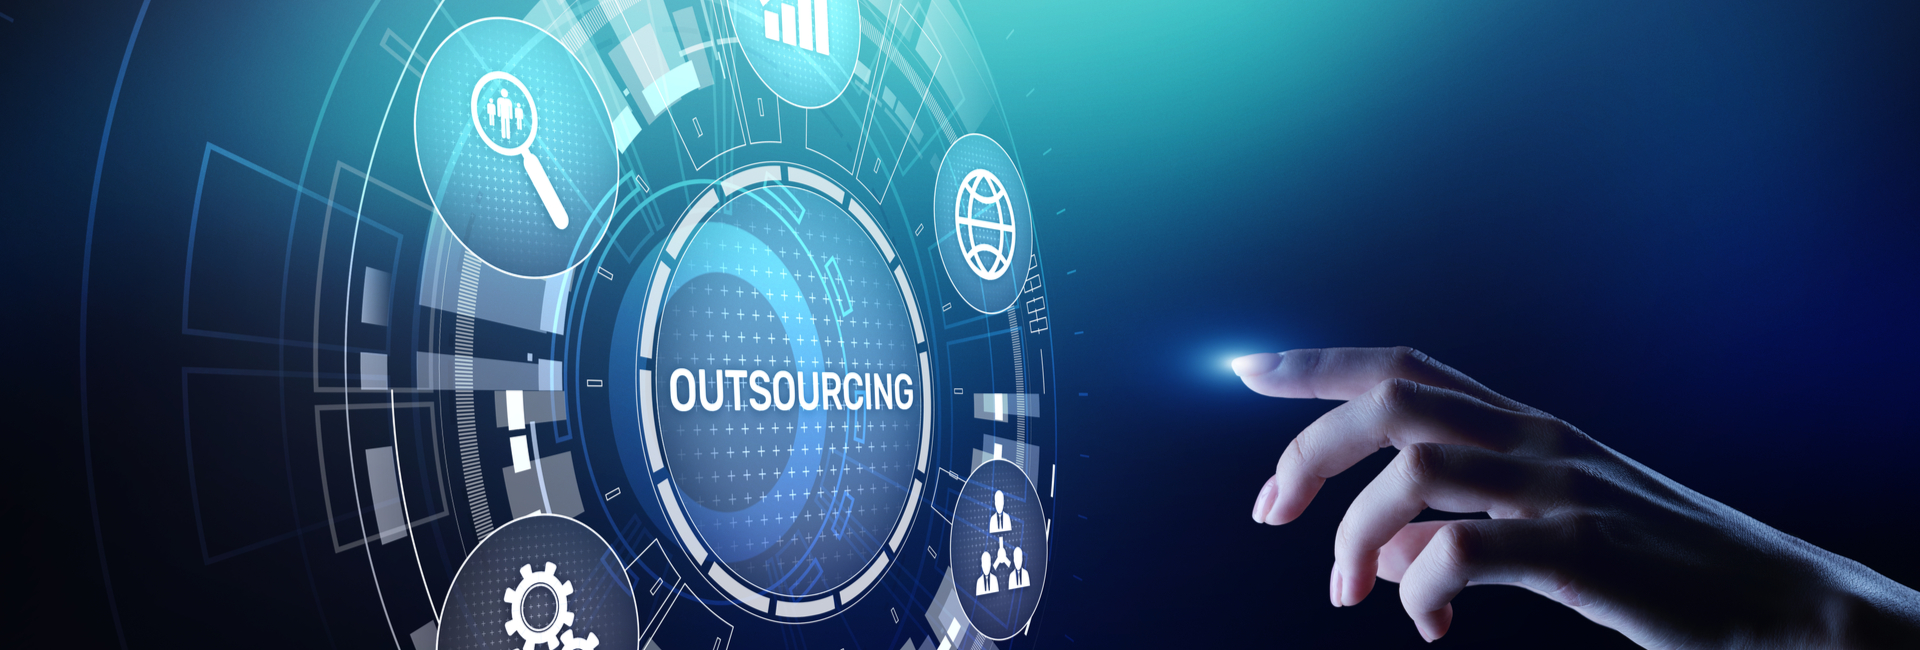 IT outsourcing: le 5 domande da porsi su quando, come e che cosa trasferire